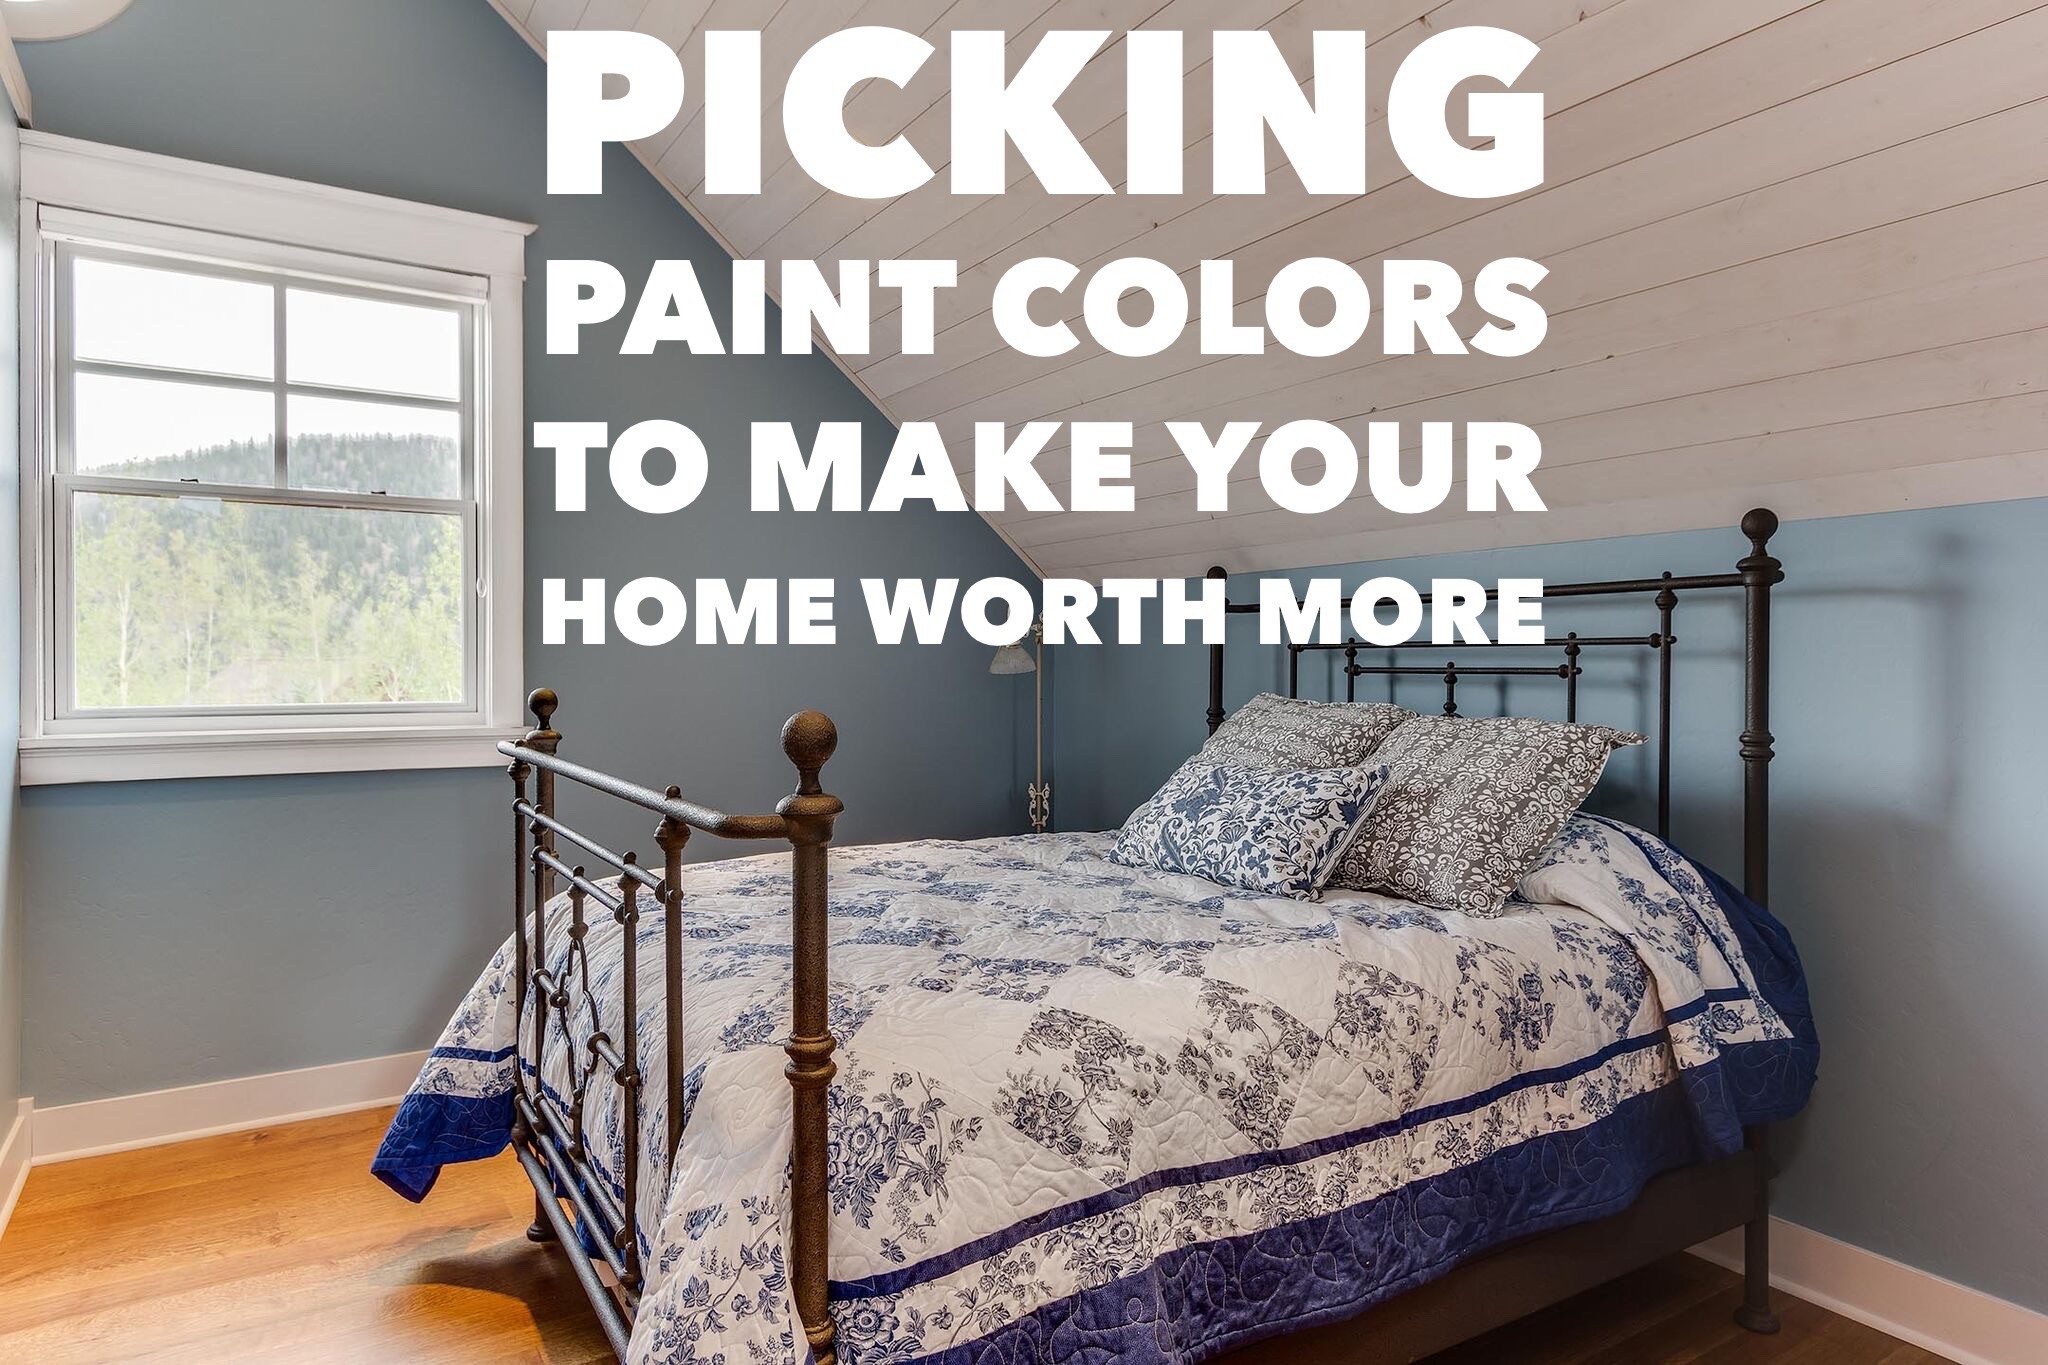 paint colors to make home worth more money